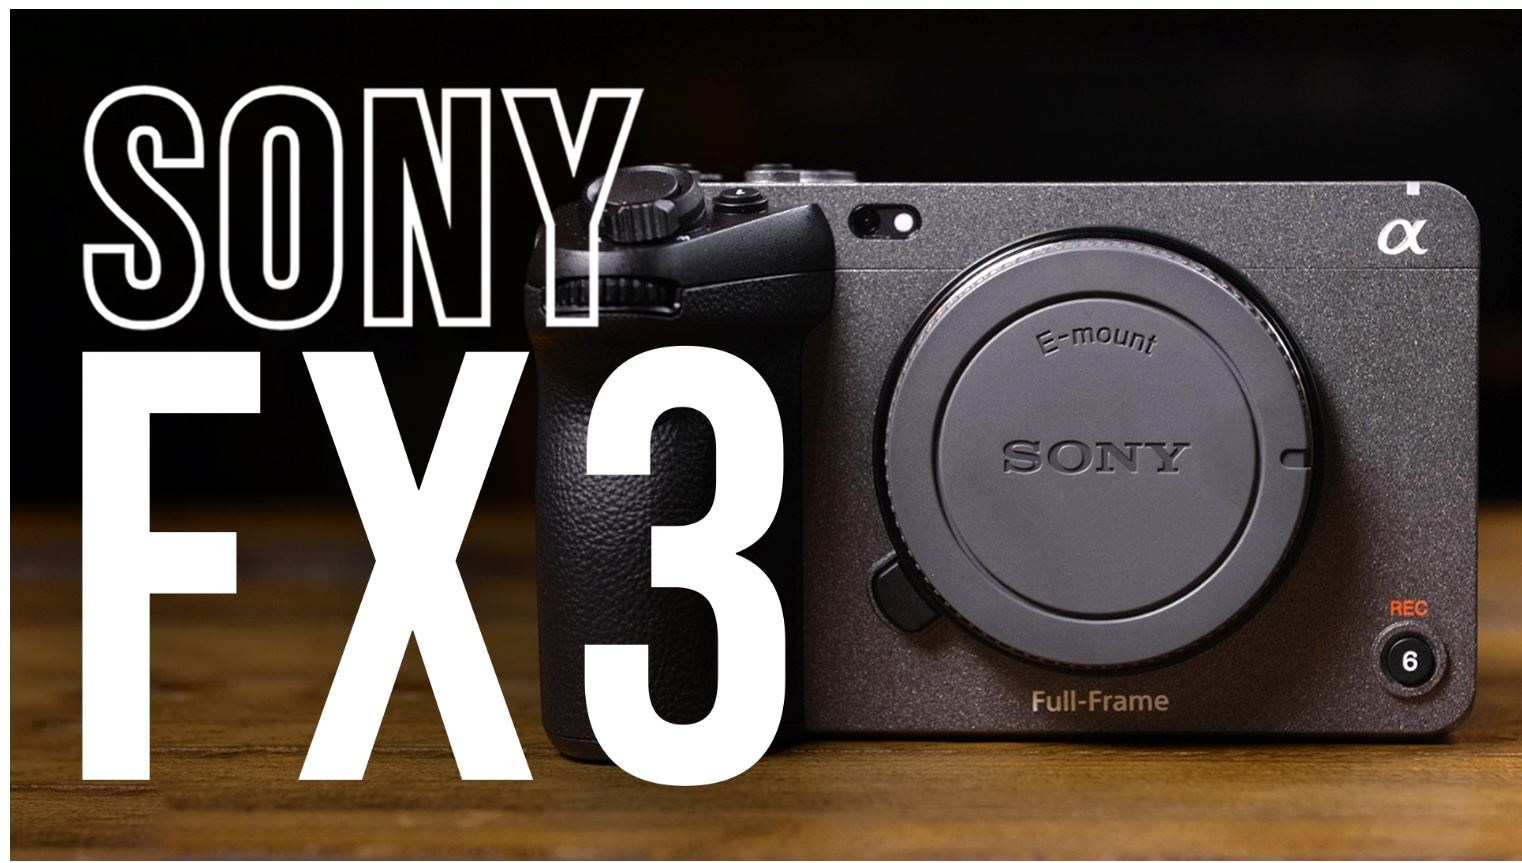 Sony Announces FX3 Full-Frame Cinema Camera, with YouTube Review from B&H